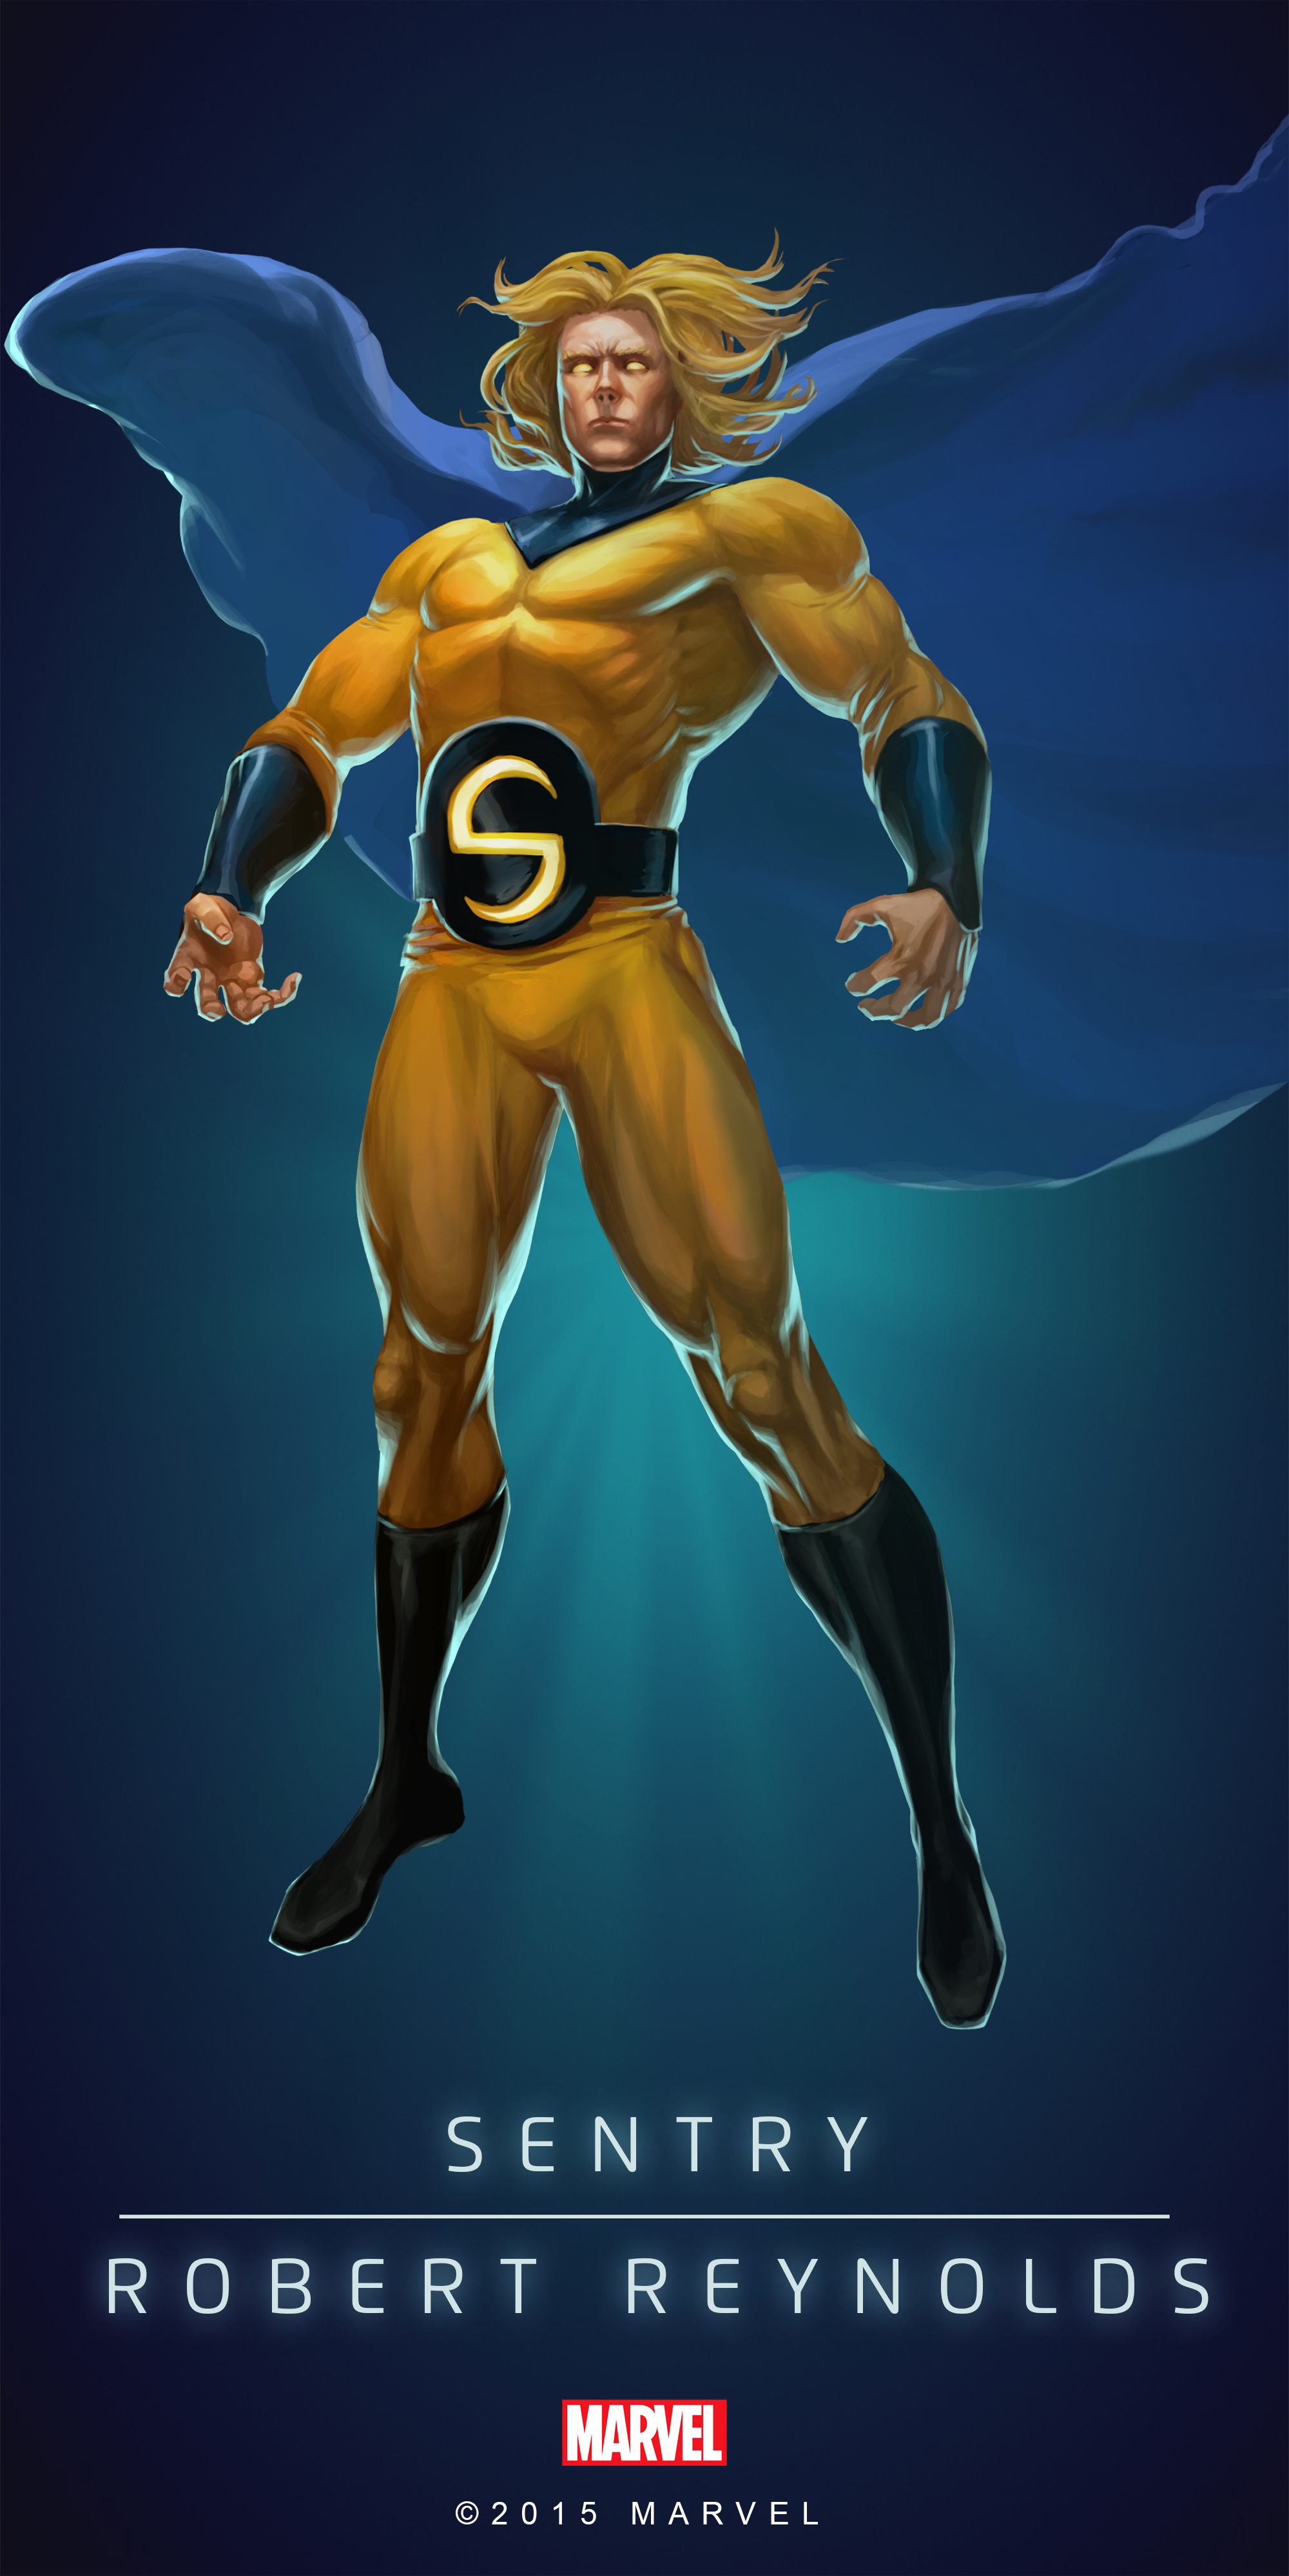 Sentry_Poster_01.png (2000×3997)